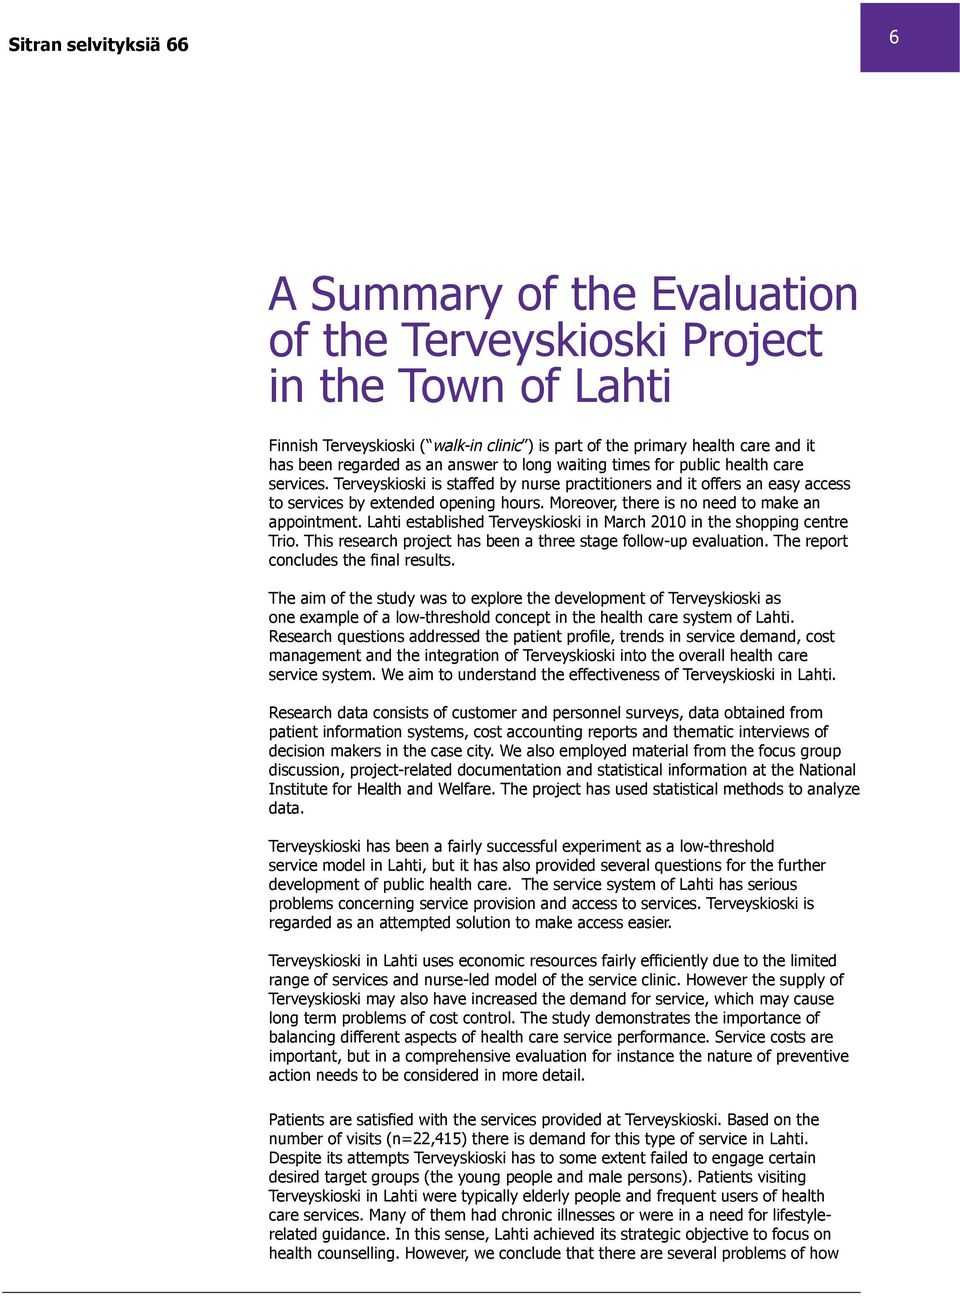 Moreover, there is no need to make an appointment. Lahti established Terveyskioski in March 2010 in the shopping centre Trio. This research project has been a three stage follow-up evaluation.